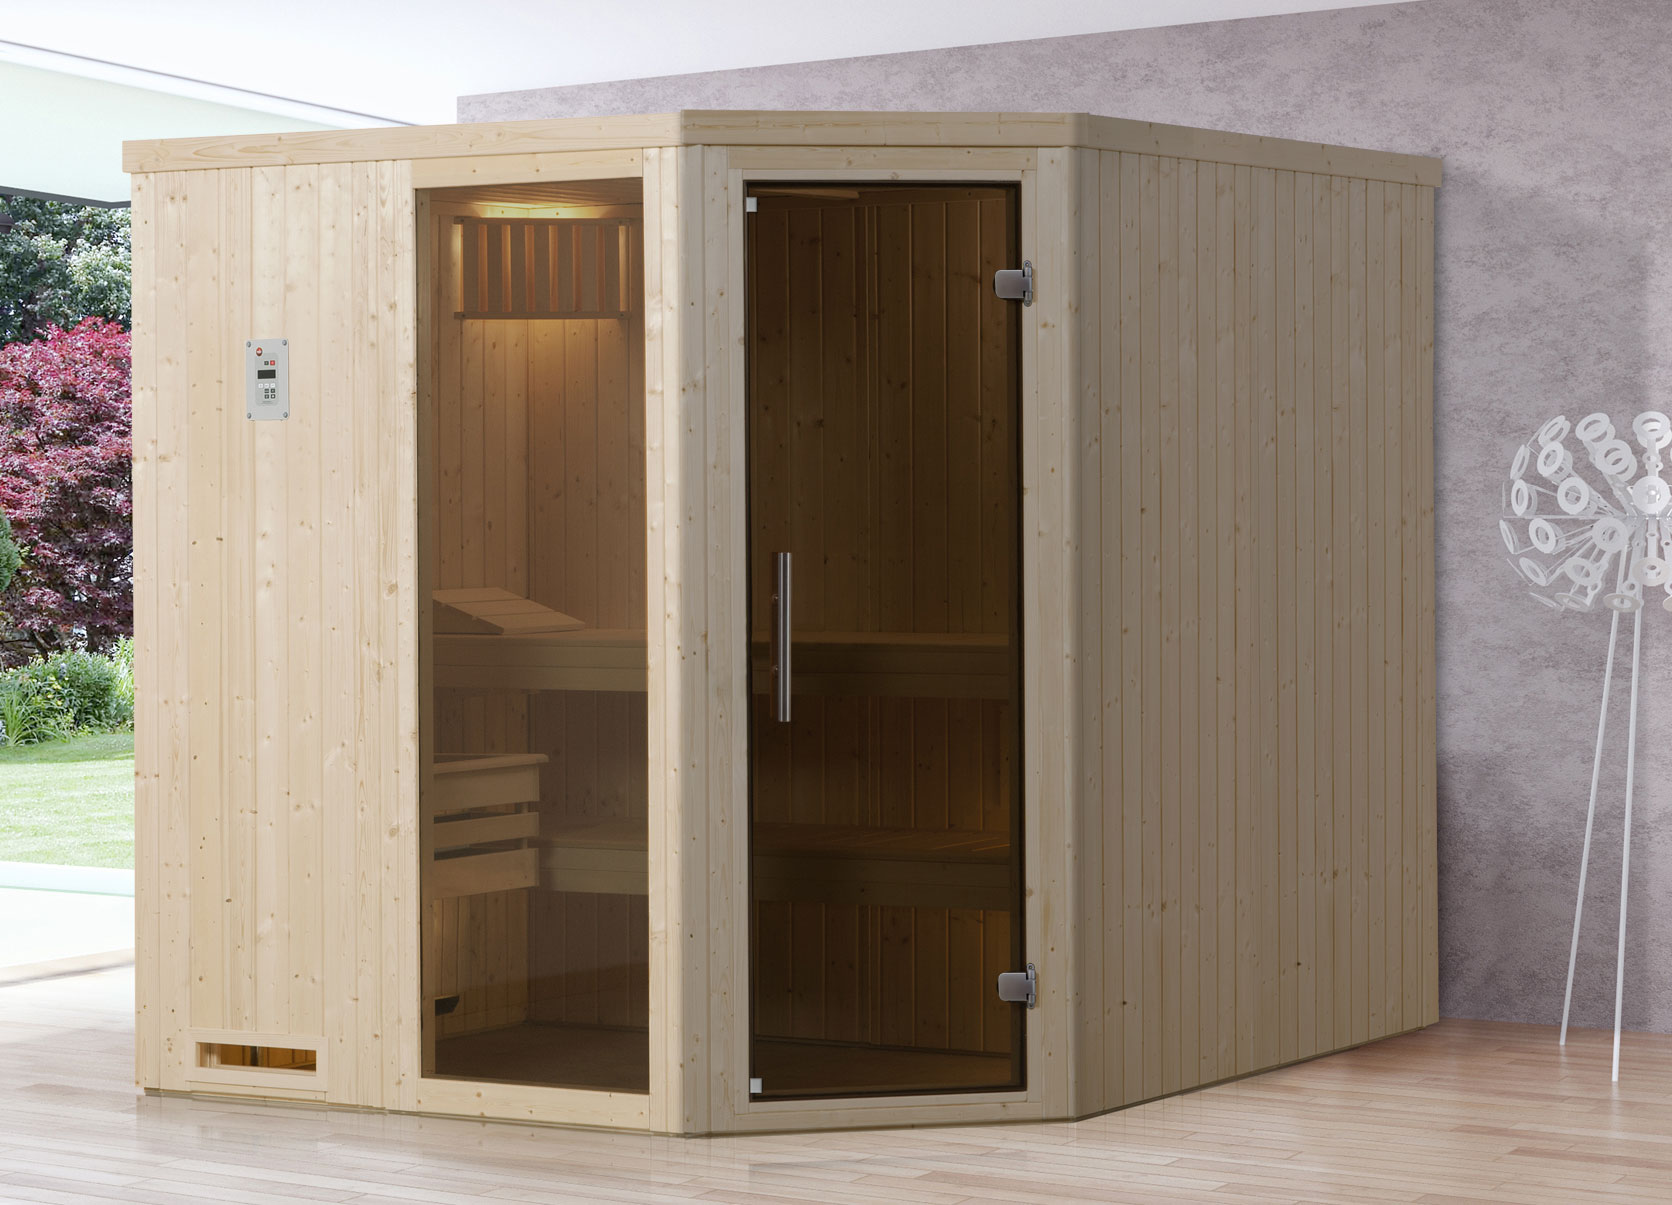 weka sauna 508 gtf gr 4 68mm ohne ofen mit glast r und fenster bei. Black Bedroom Furniture Sets. Home Design Ideas